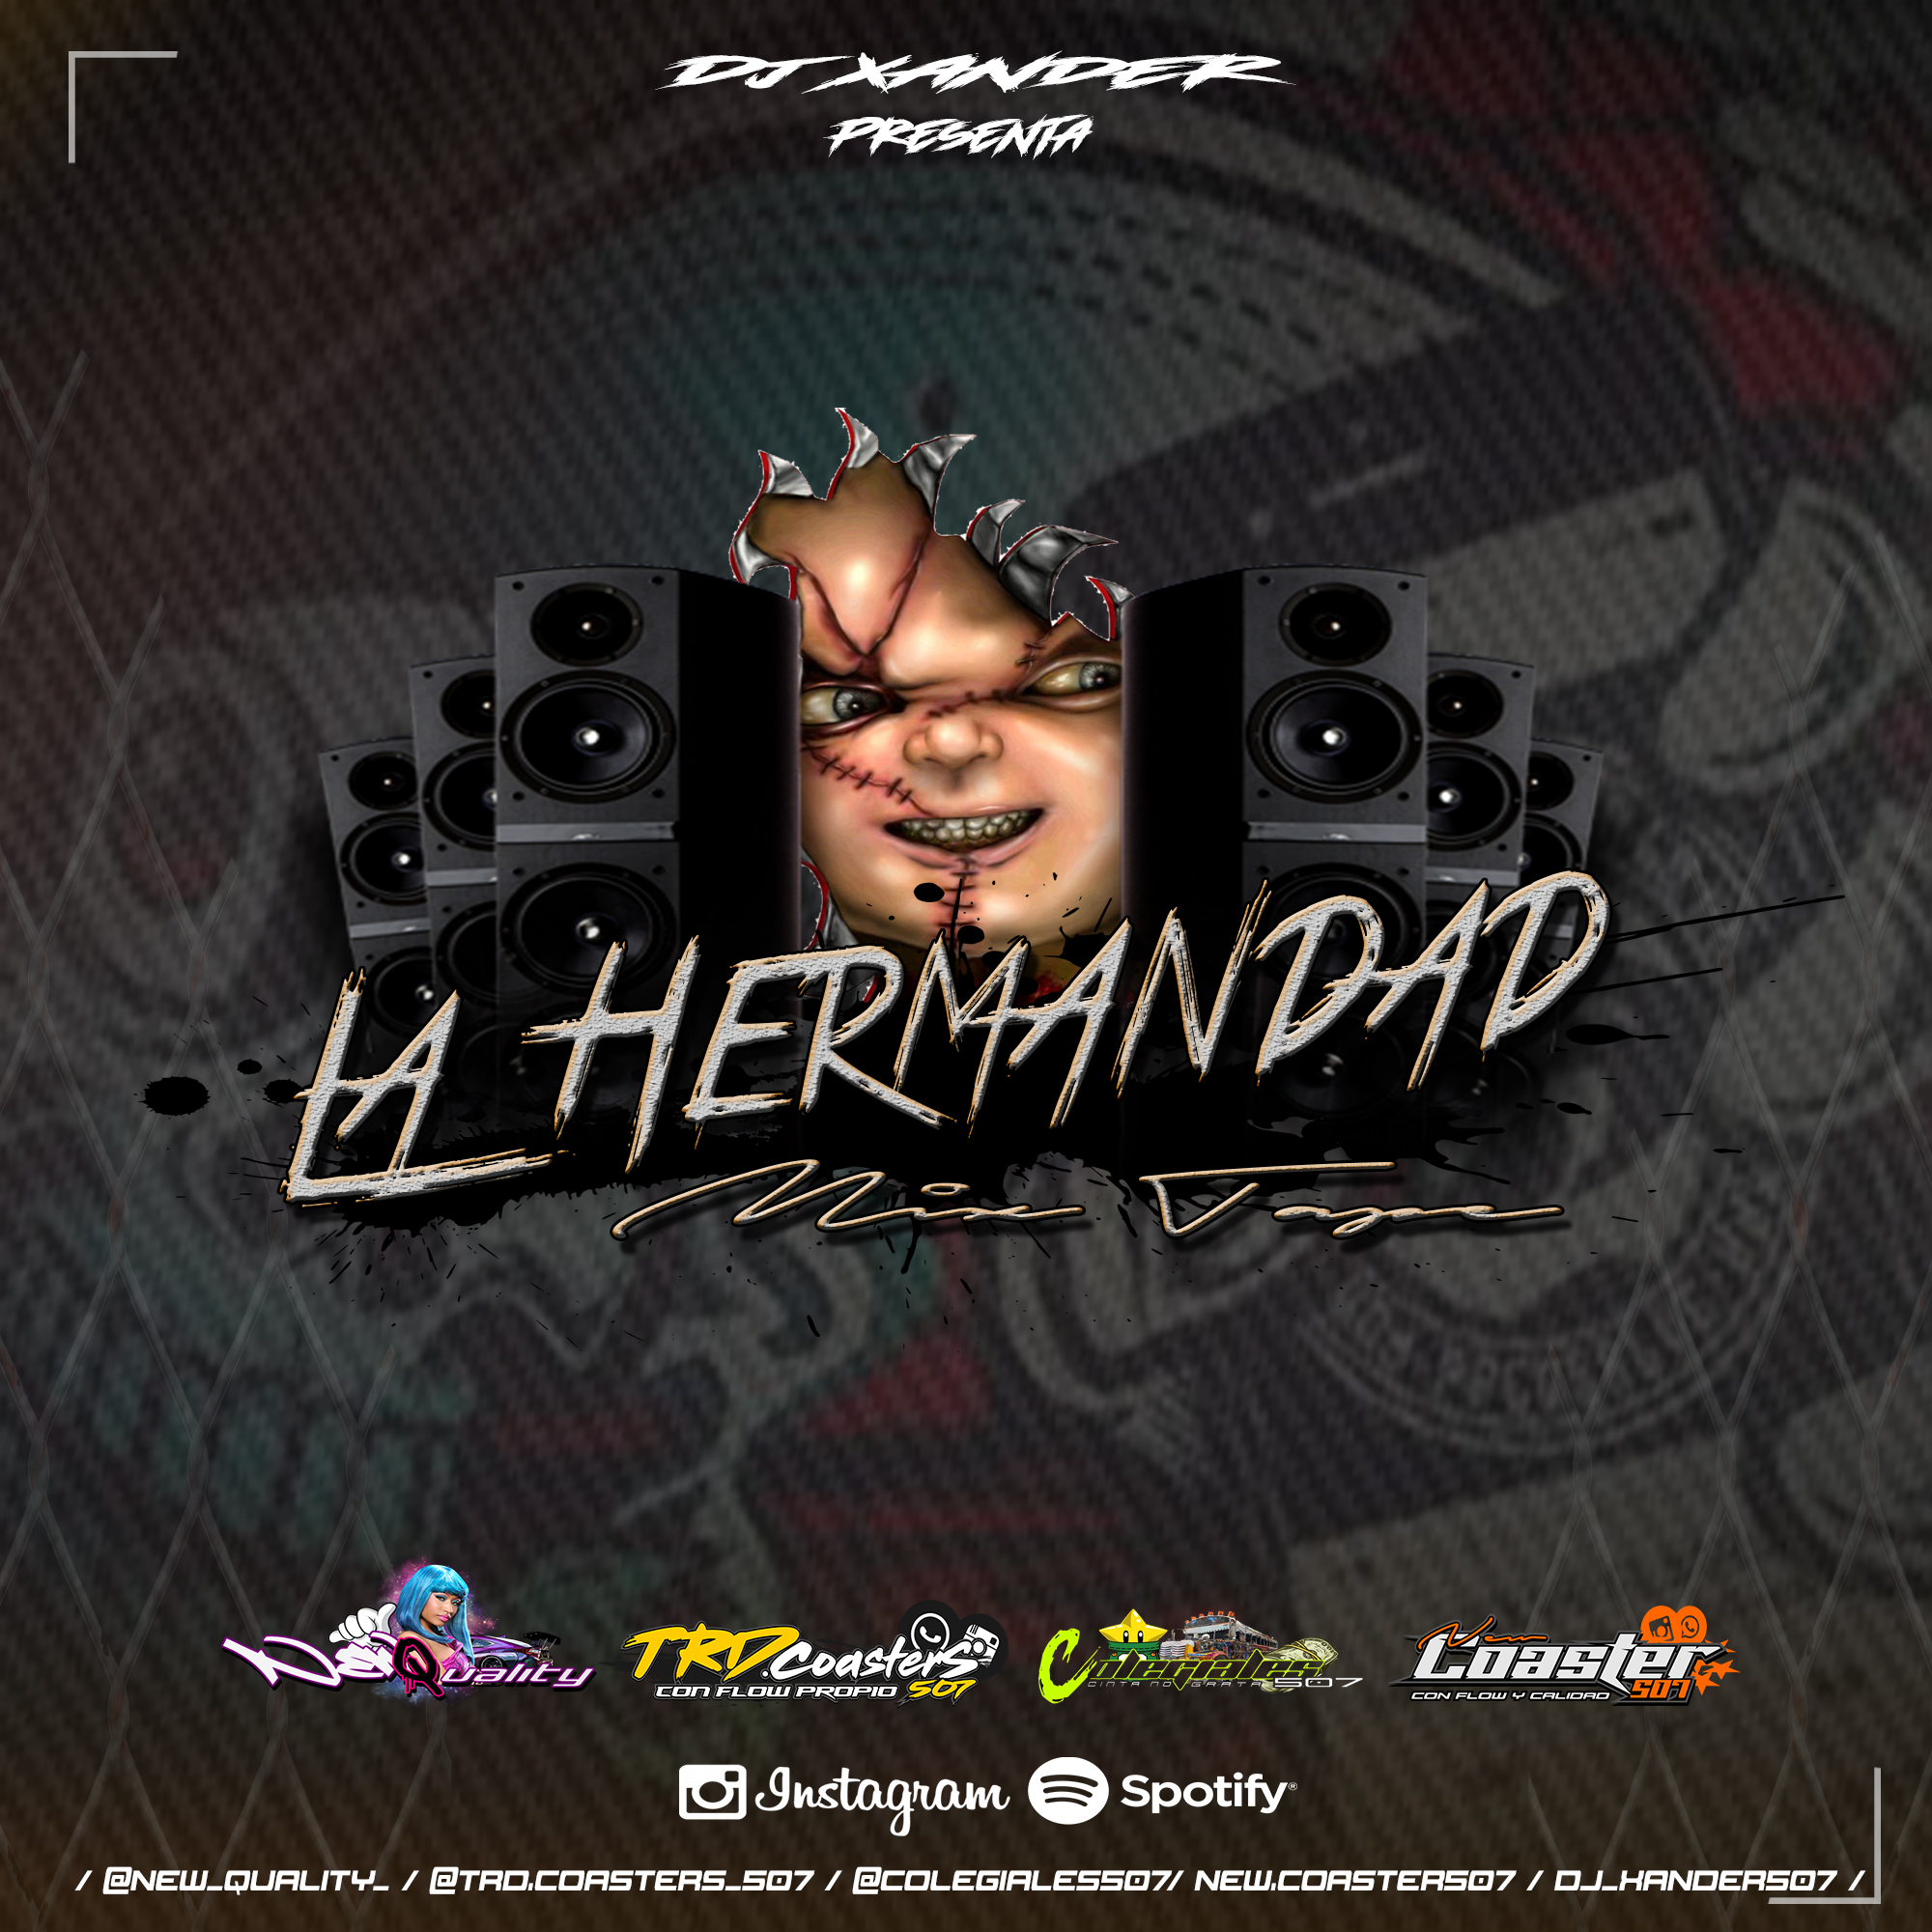 La Hermandad Mix Tape (Traquetos) By Dj Xander507